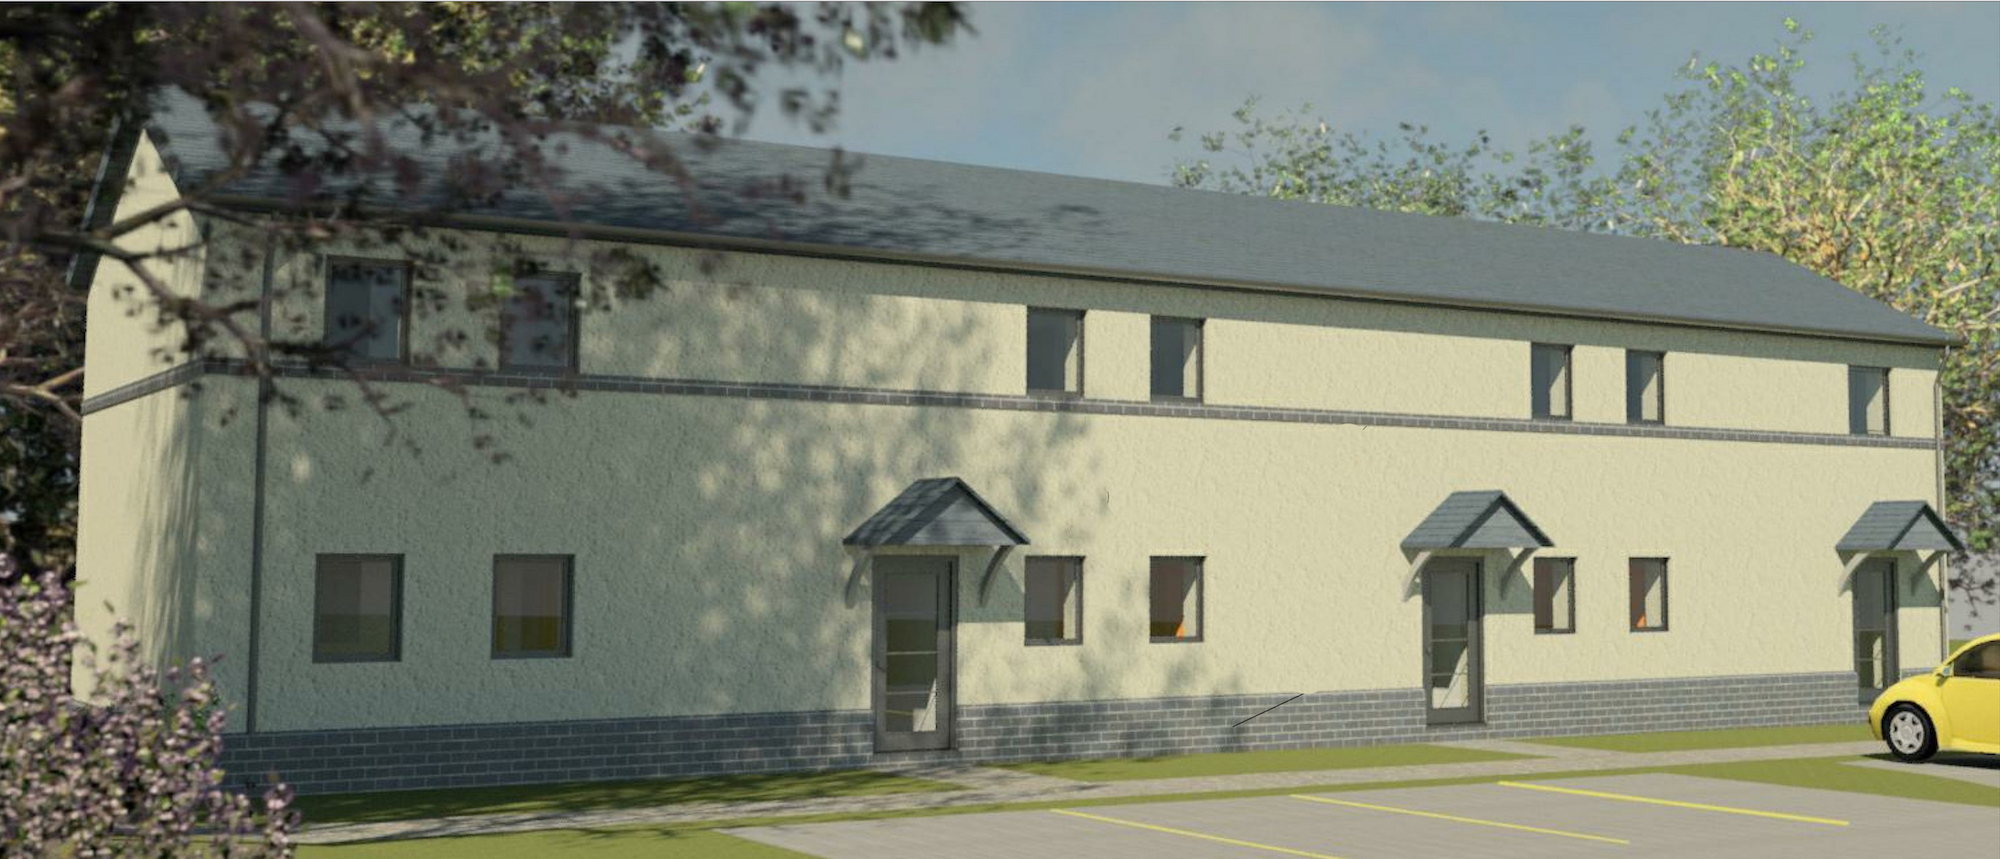 the first Passivhaus Certified affordable homes in Powys and possibly Wales.